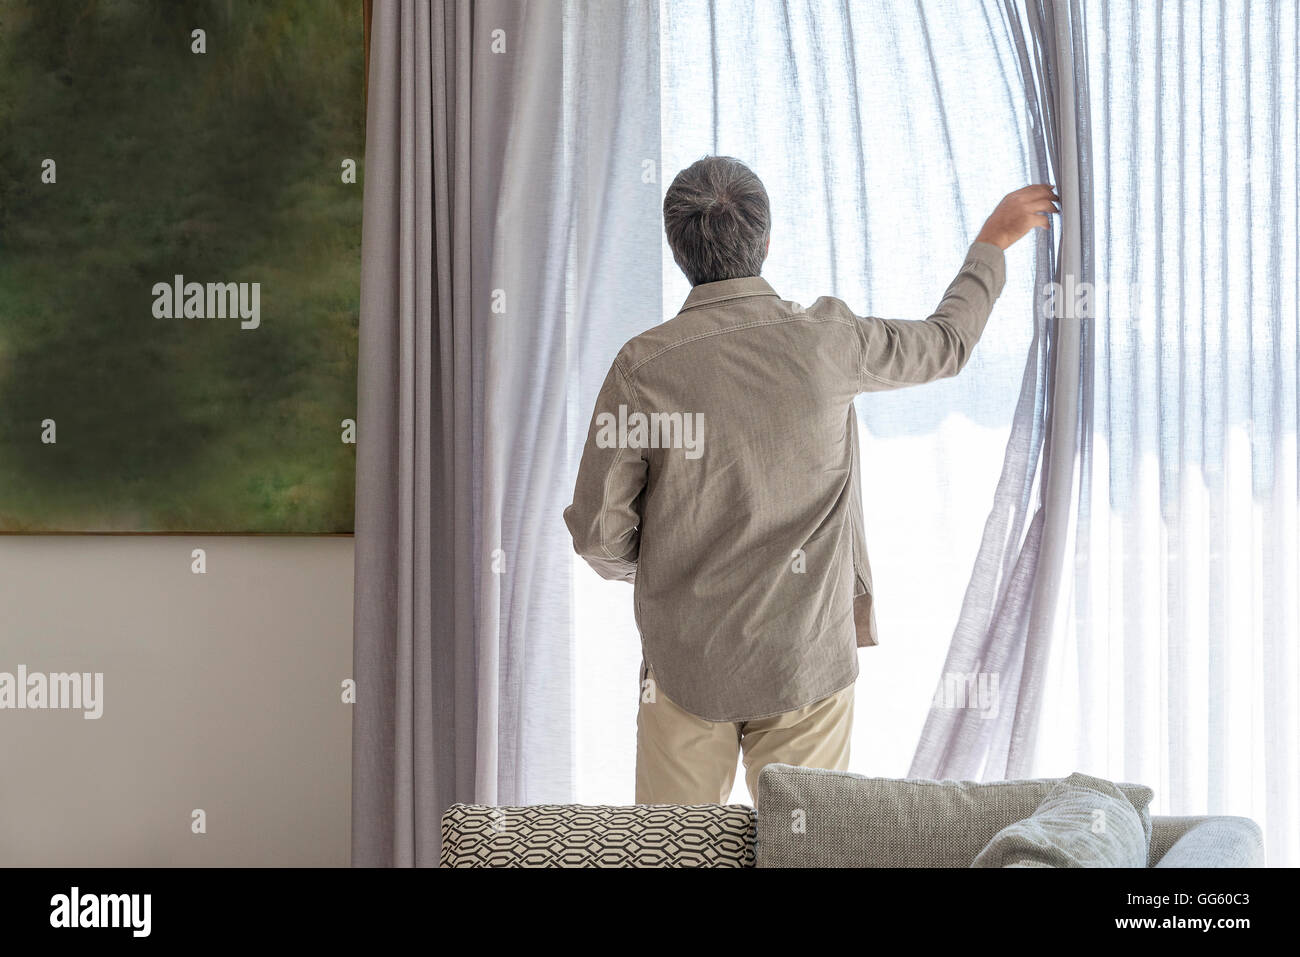 Rear view of a man holding curtain on window - Stock Image